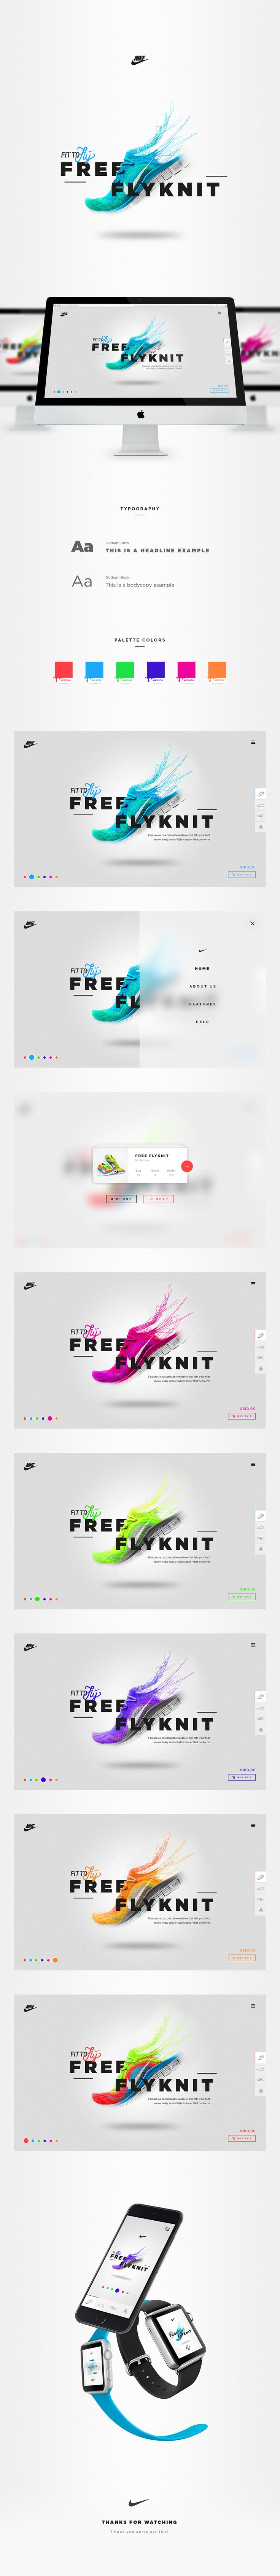 Nike Free Flyknit - Microsite on Behance